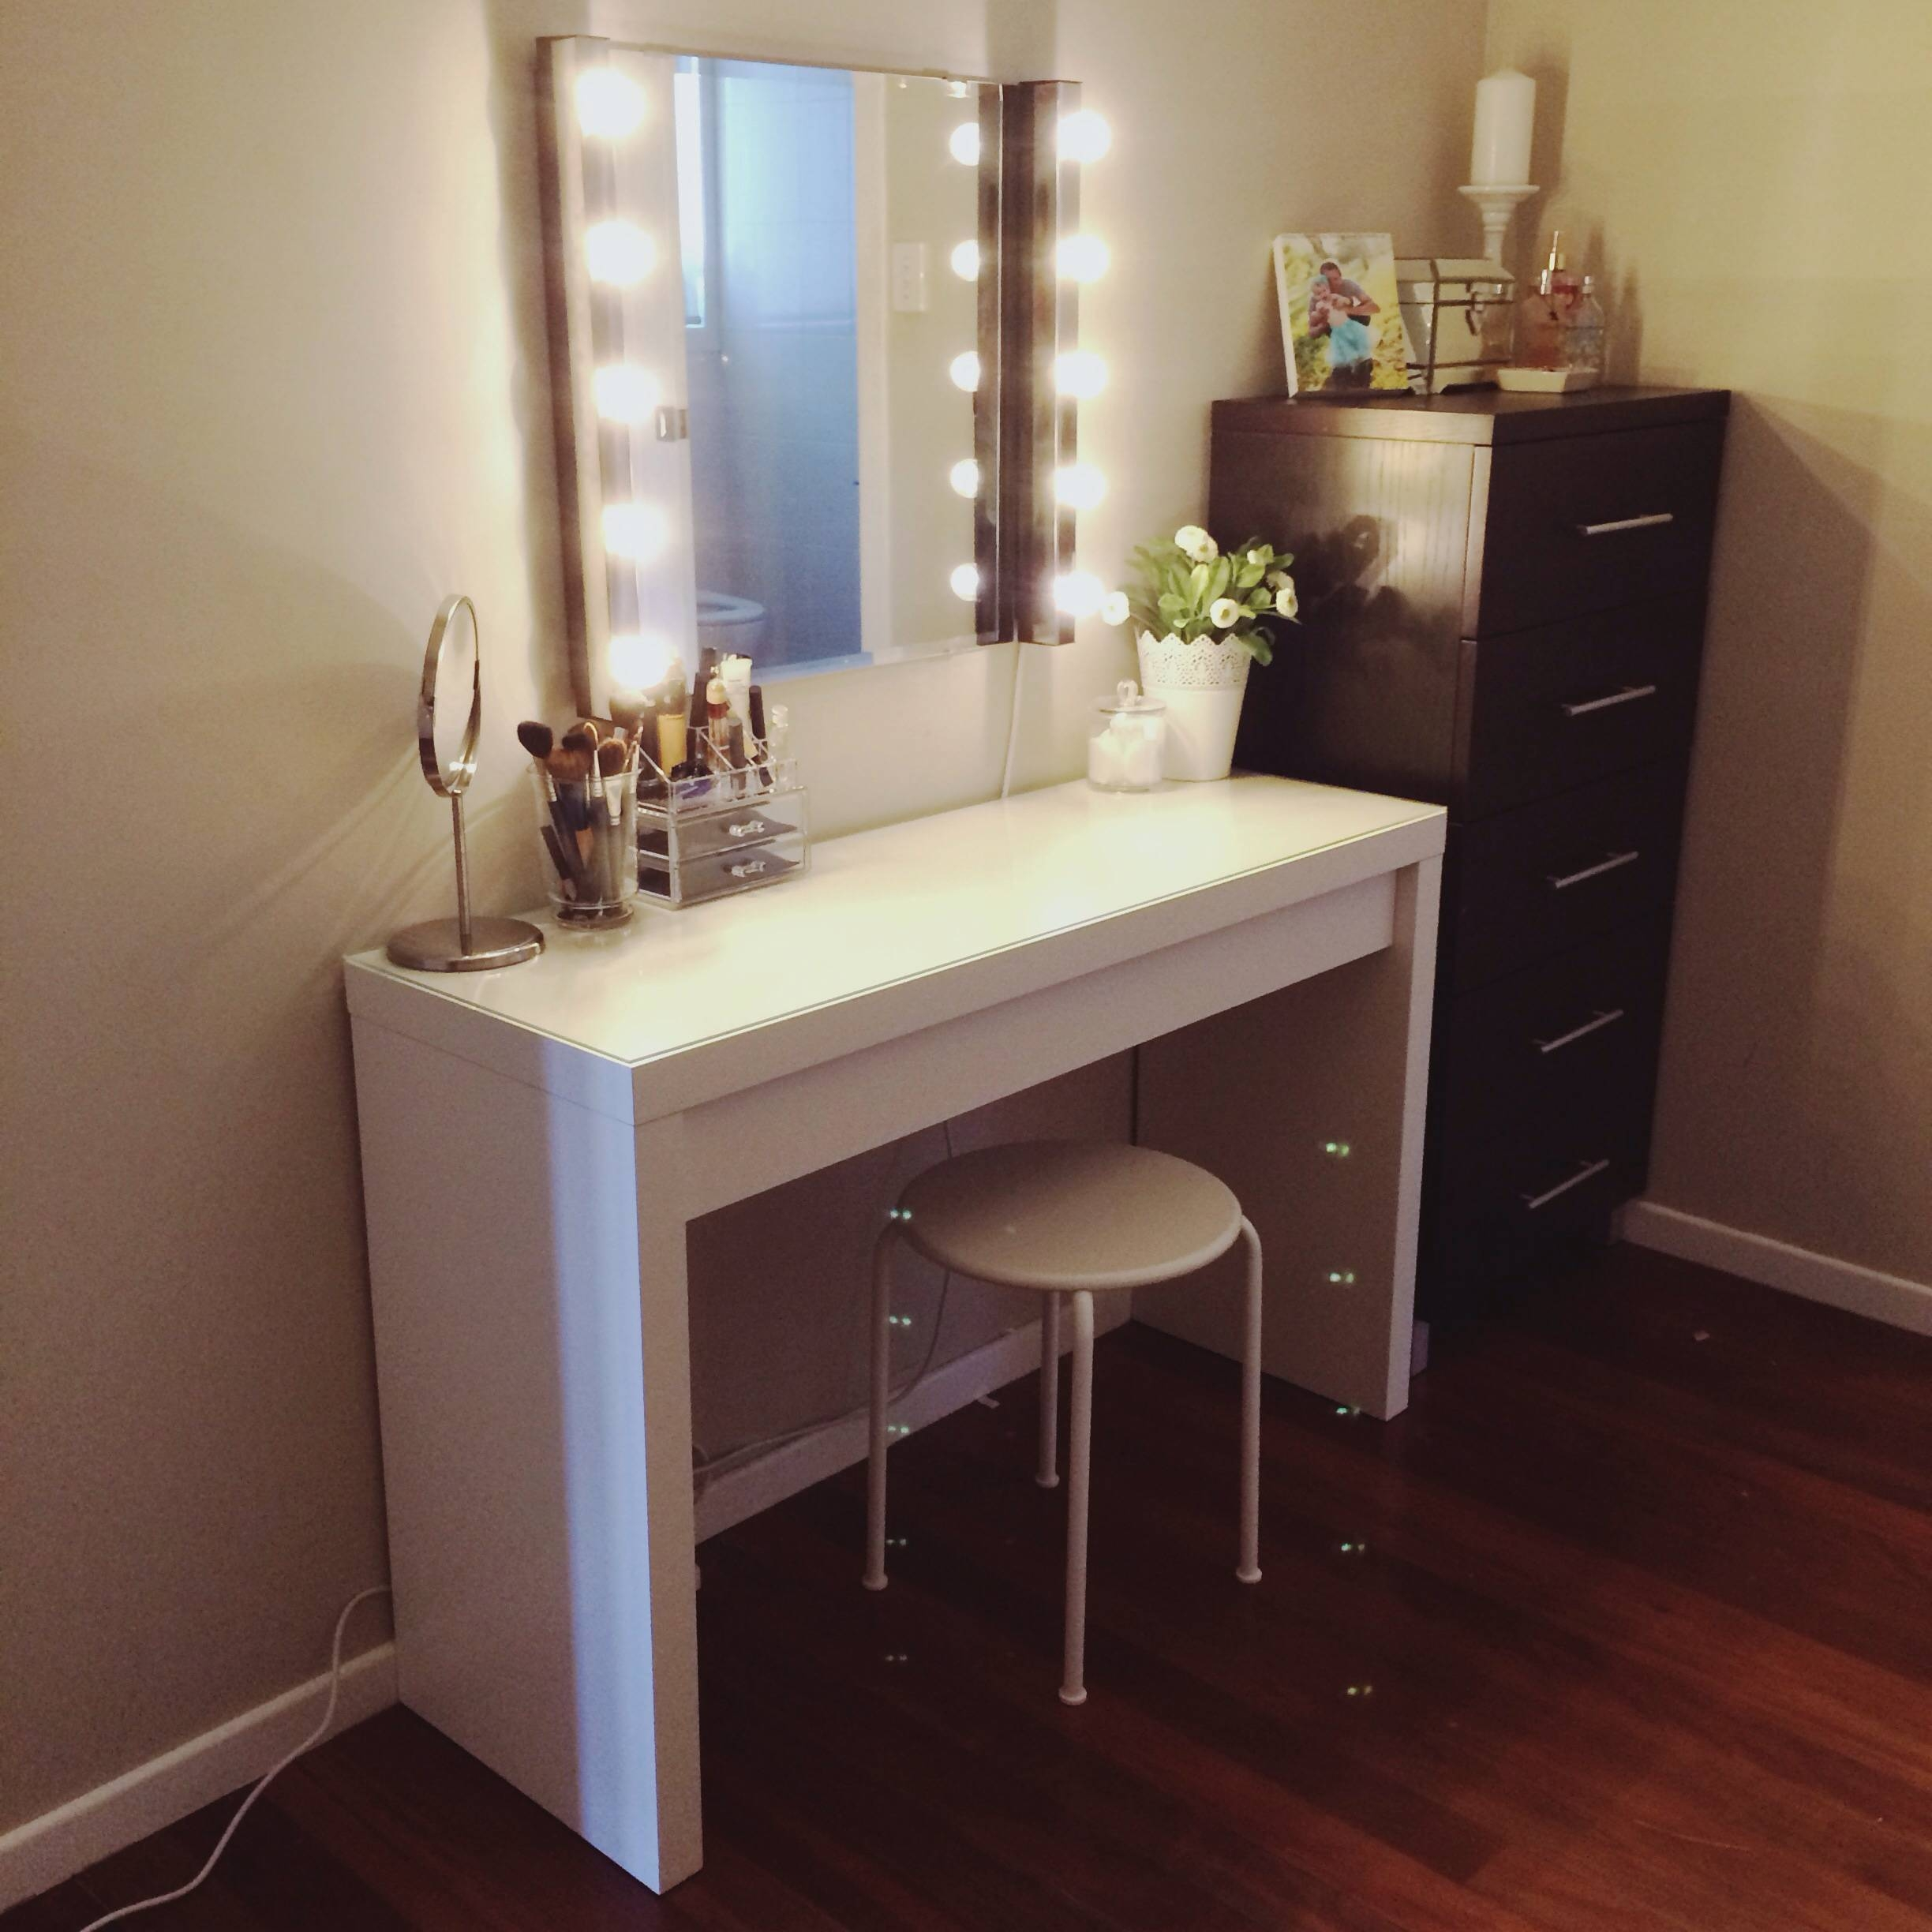 Vanity Dressing Table With Mirror And Lights | Creative Vanity for Decorative Dressing Table Mirrors (Image 21 of 25)